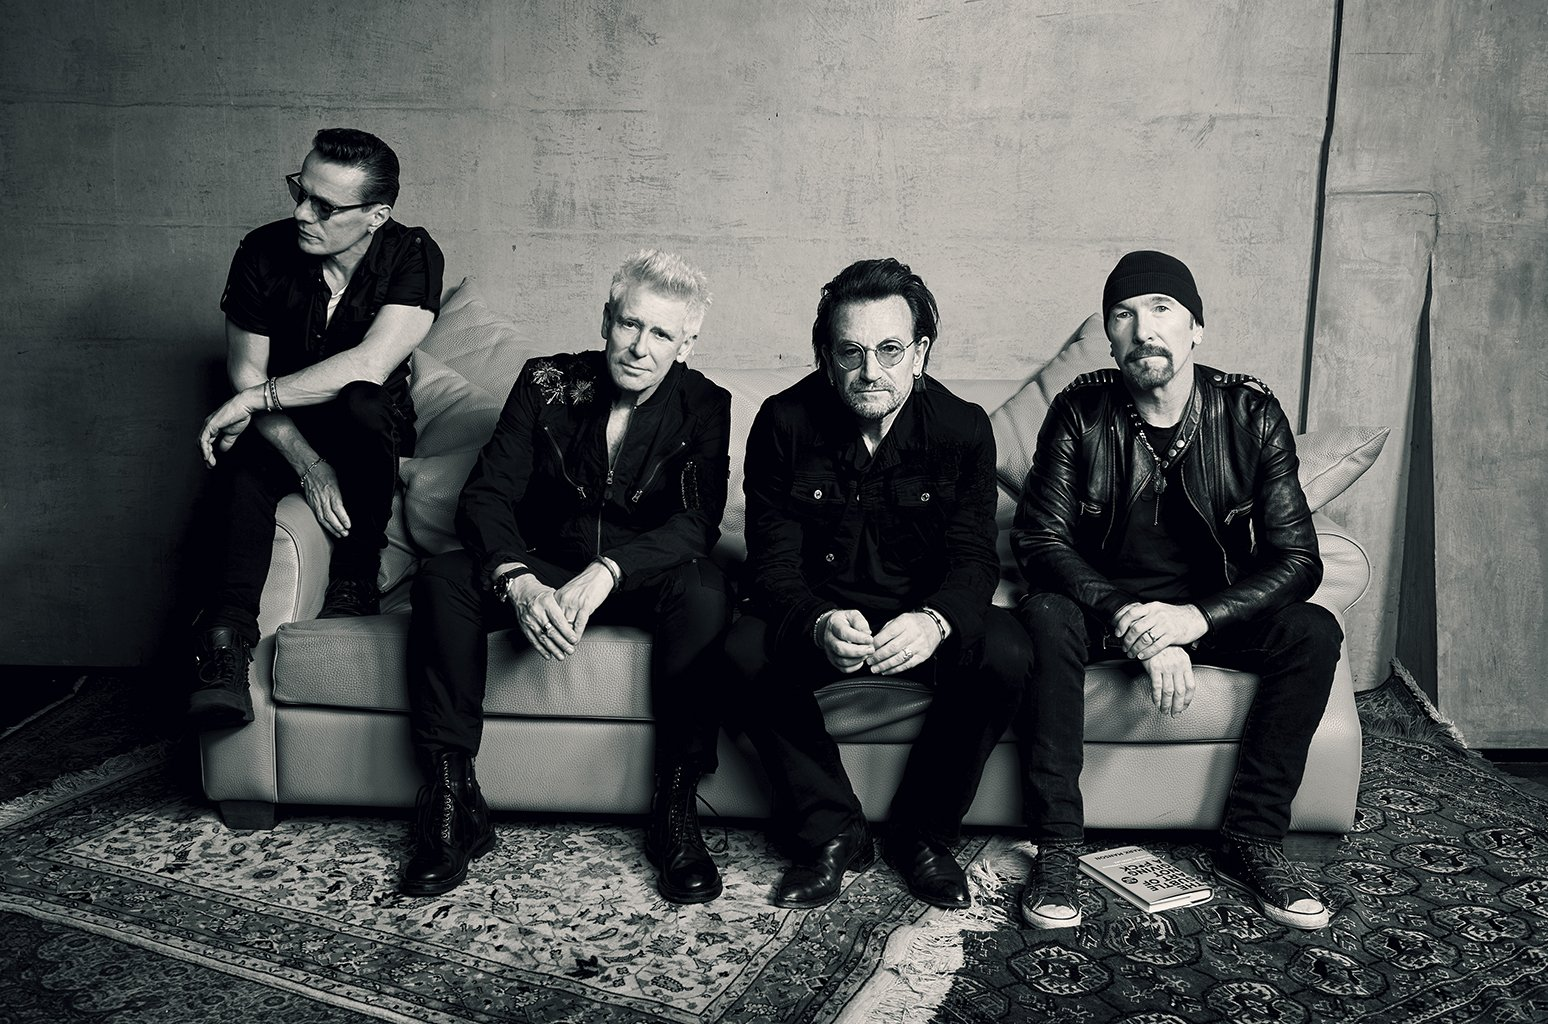 U2 snags third leader on Top Facebook Live Videos chart https://t.co/LA8pV00nV2 https://t.co/4U9eC8rNKX